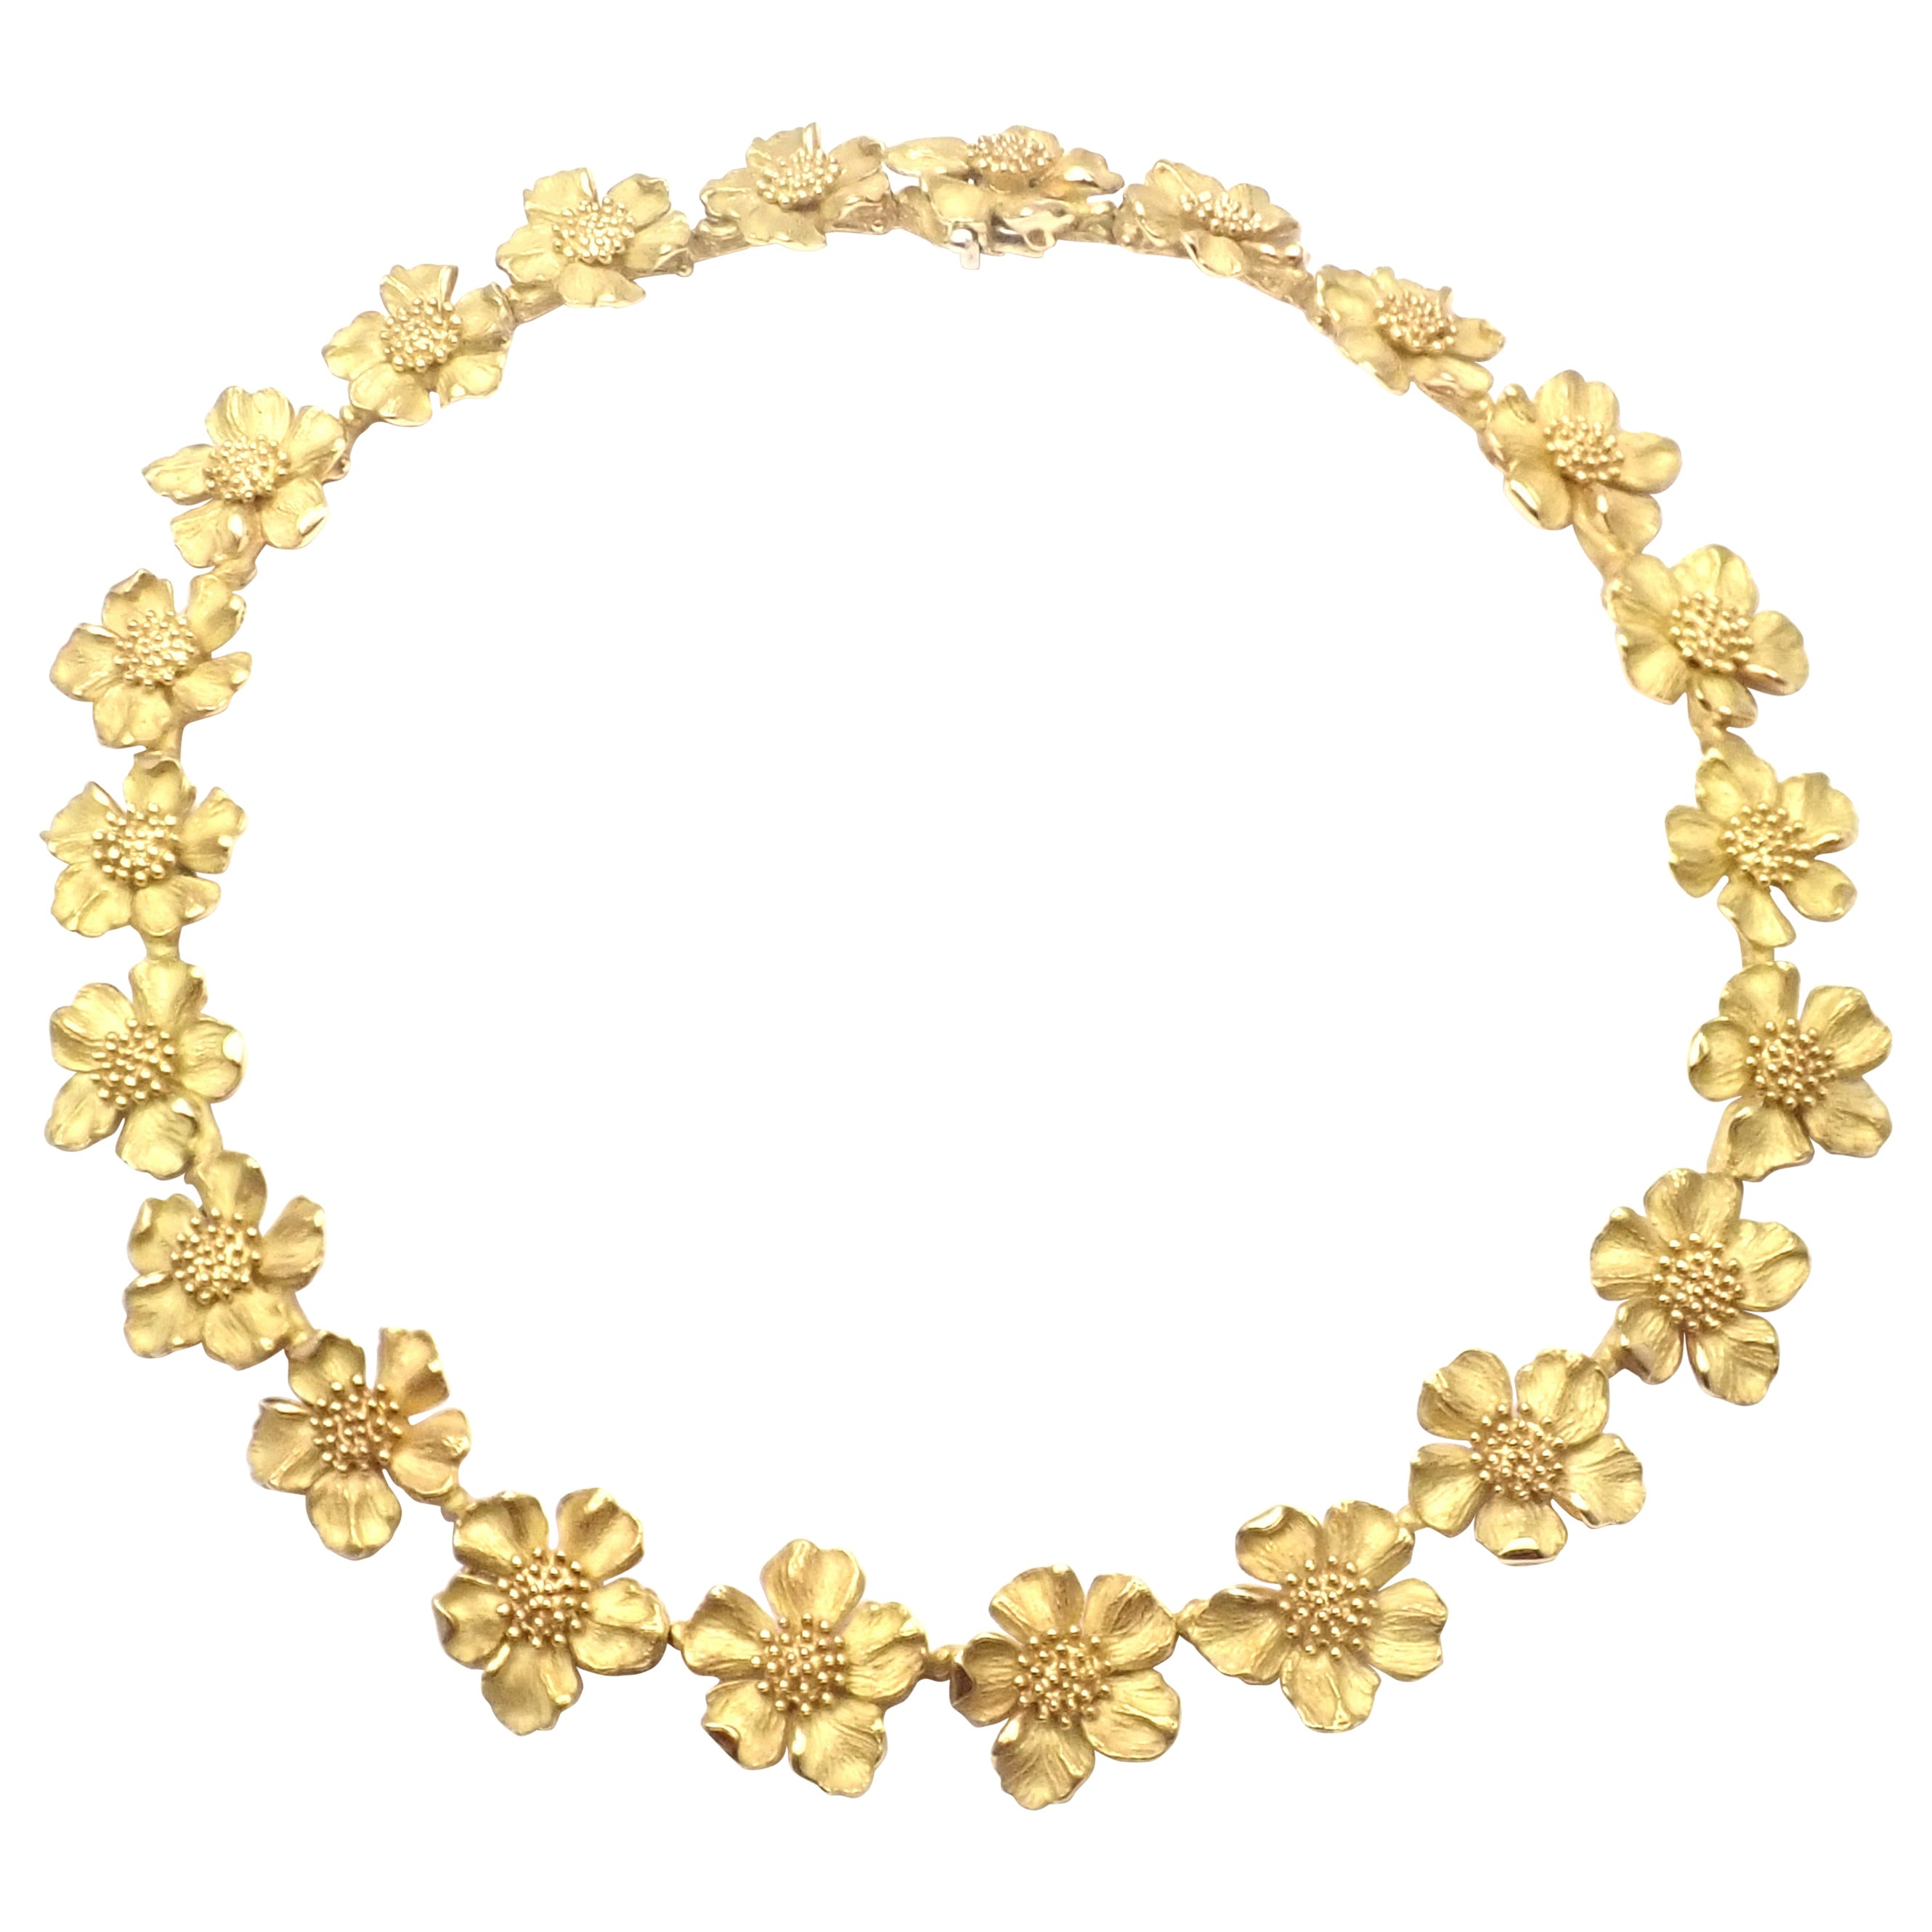 Vintage Tiffany & Co. Classics Dogwood Flower Yellow Gold Necklace